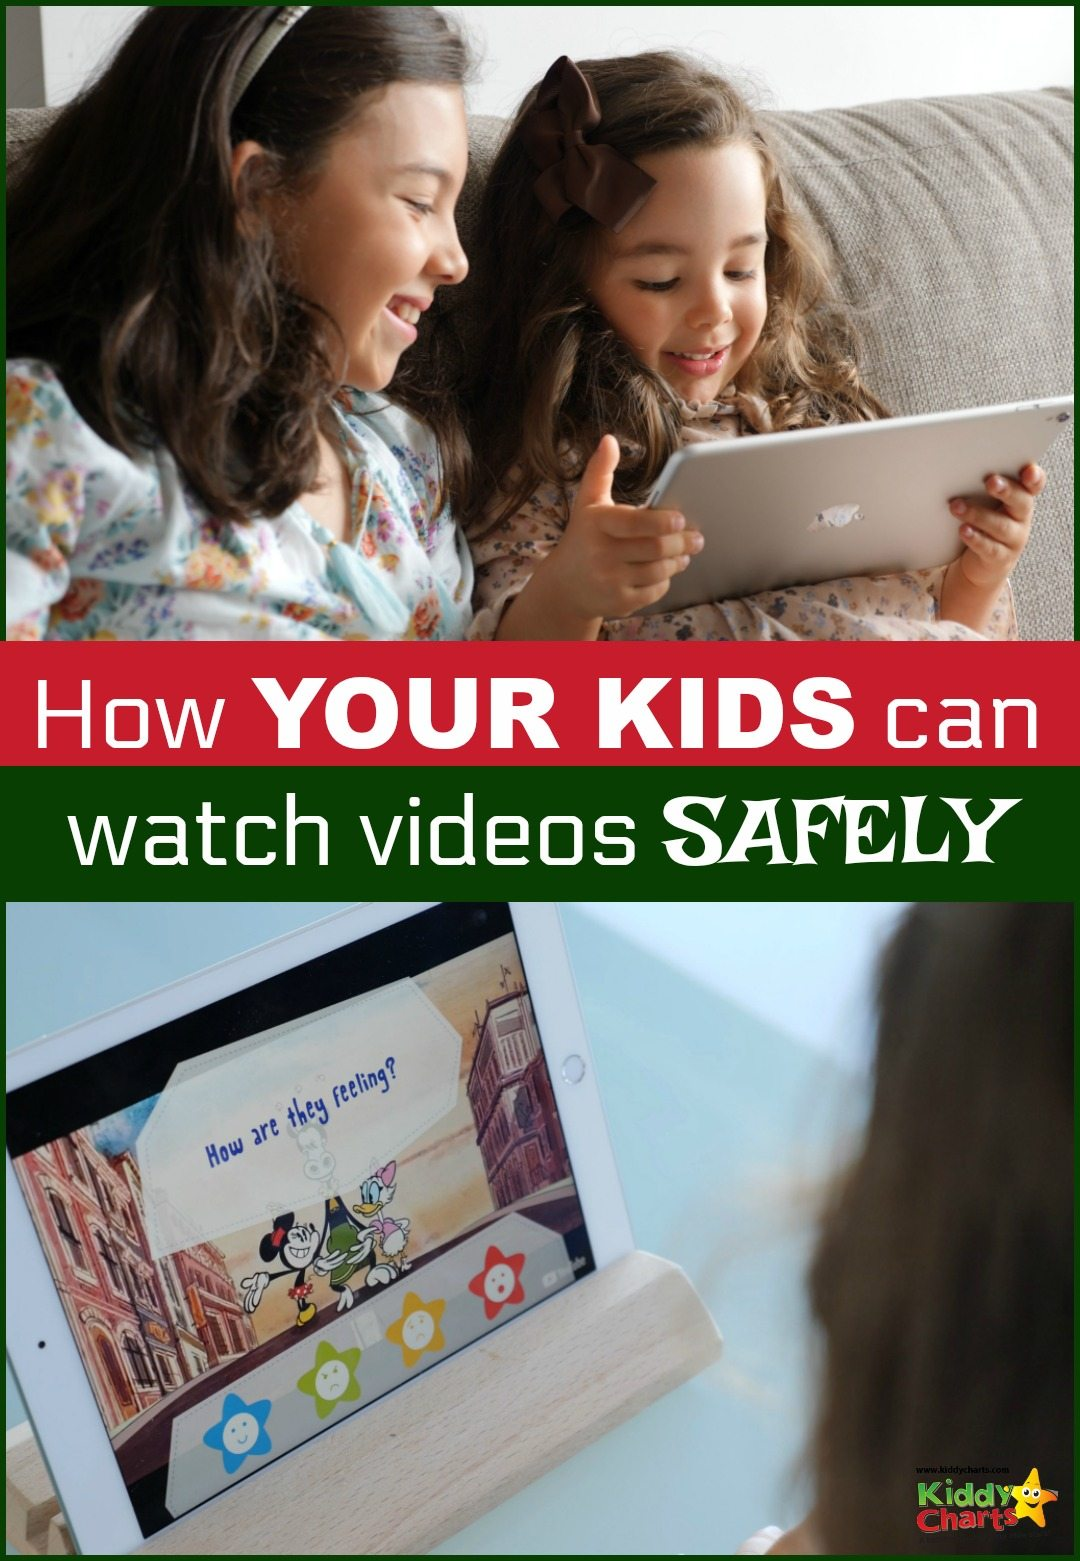 If you want to watch videos online safely with the kids - kiddZtube if for you!